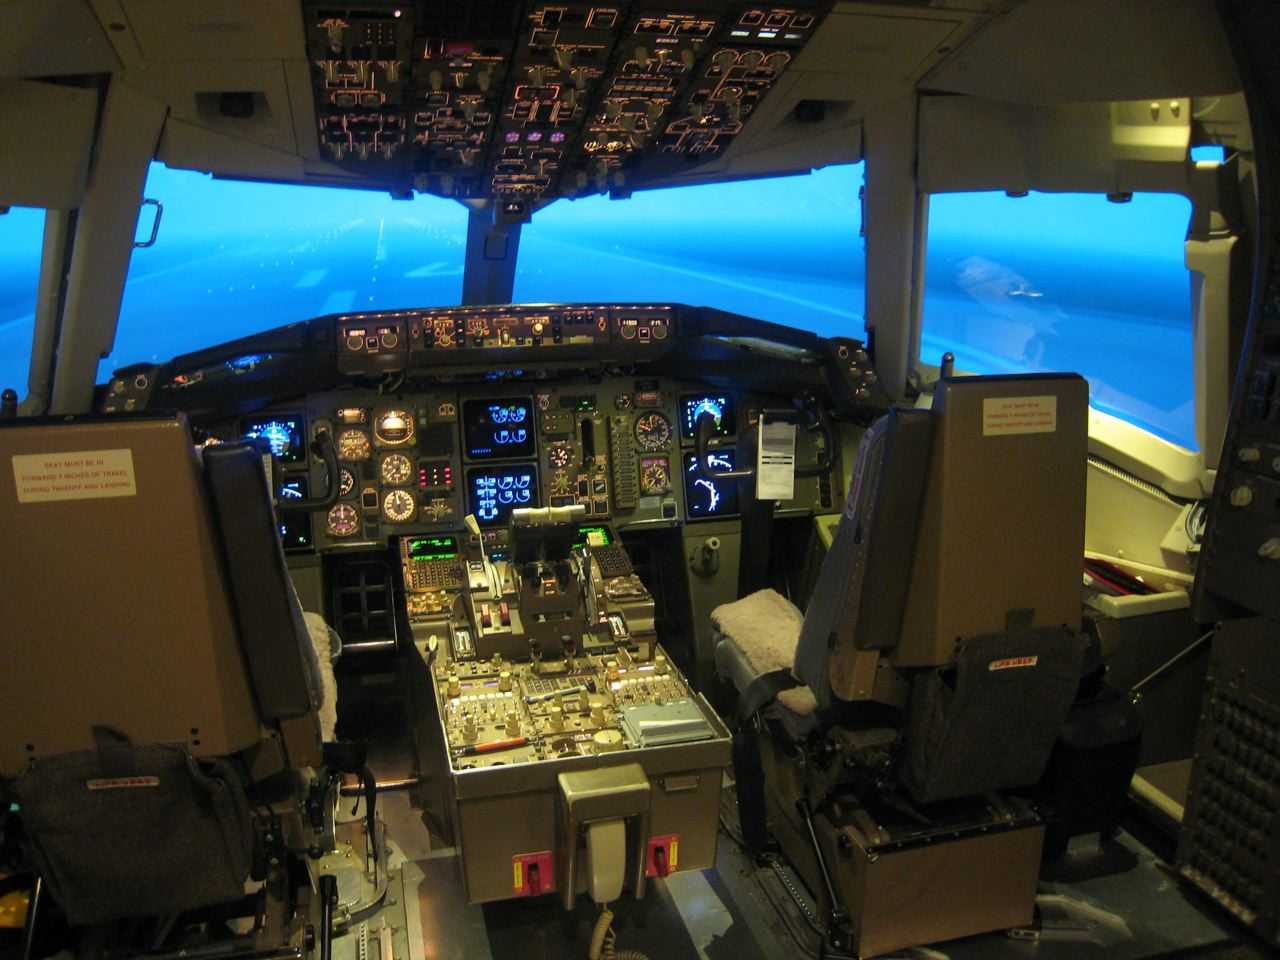 Boeing 767 Simulator Training - a photo on Flickriver